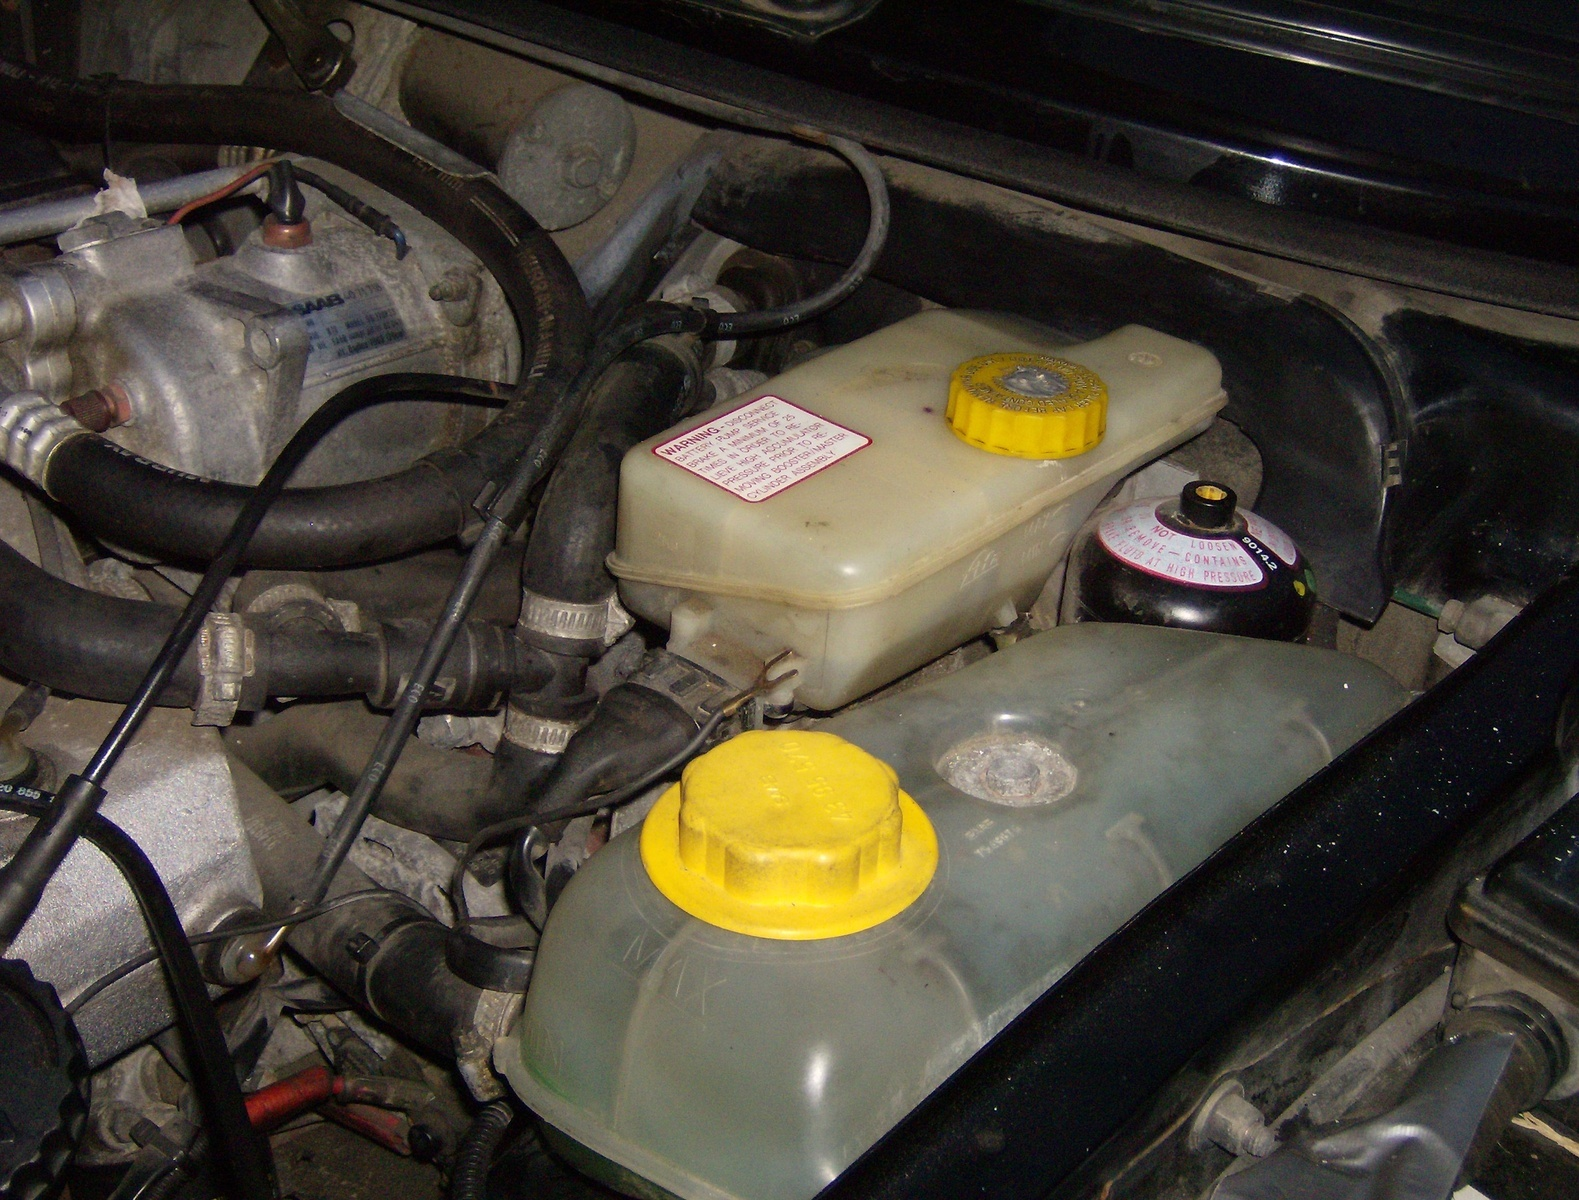 1992 saab 900 wiring harness saab 900 questions wire right under the throttle cable oil  wire right under the throttle cable